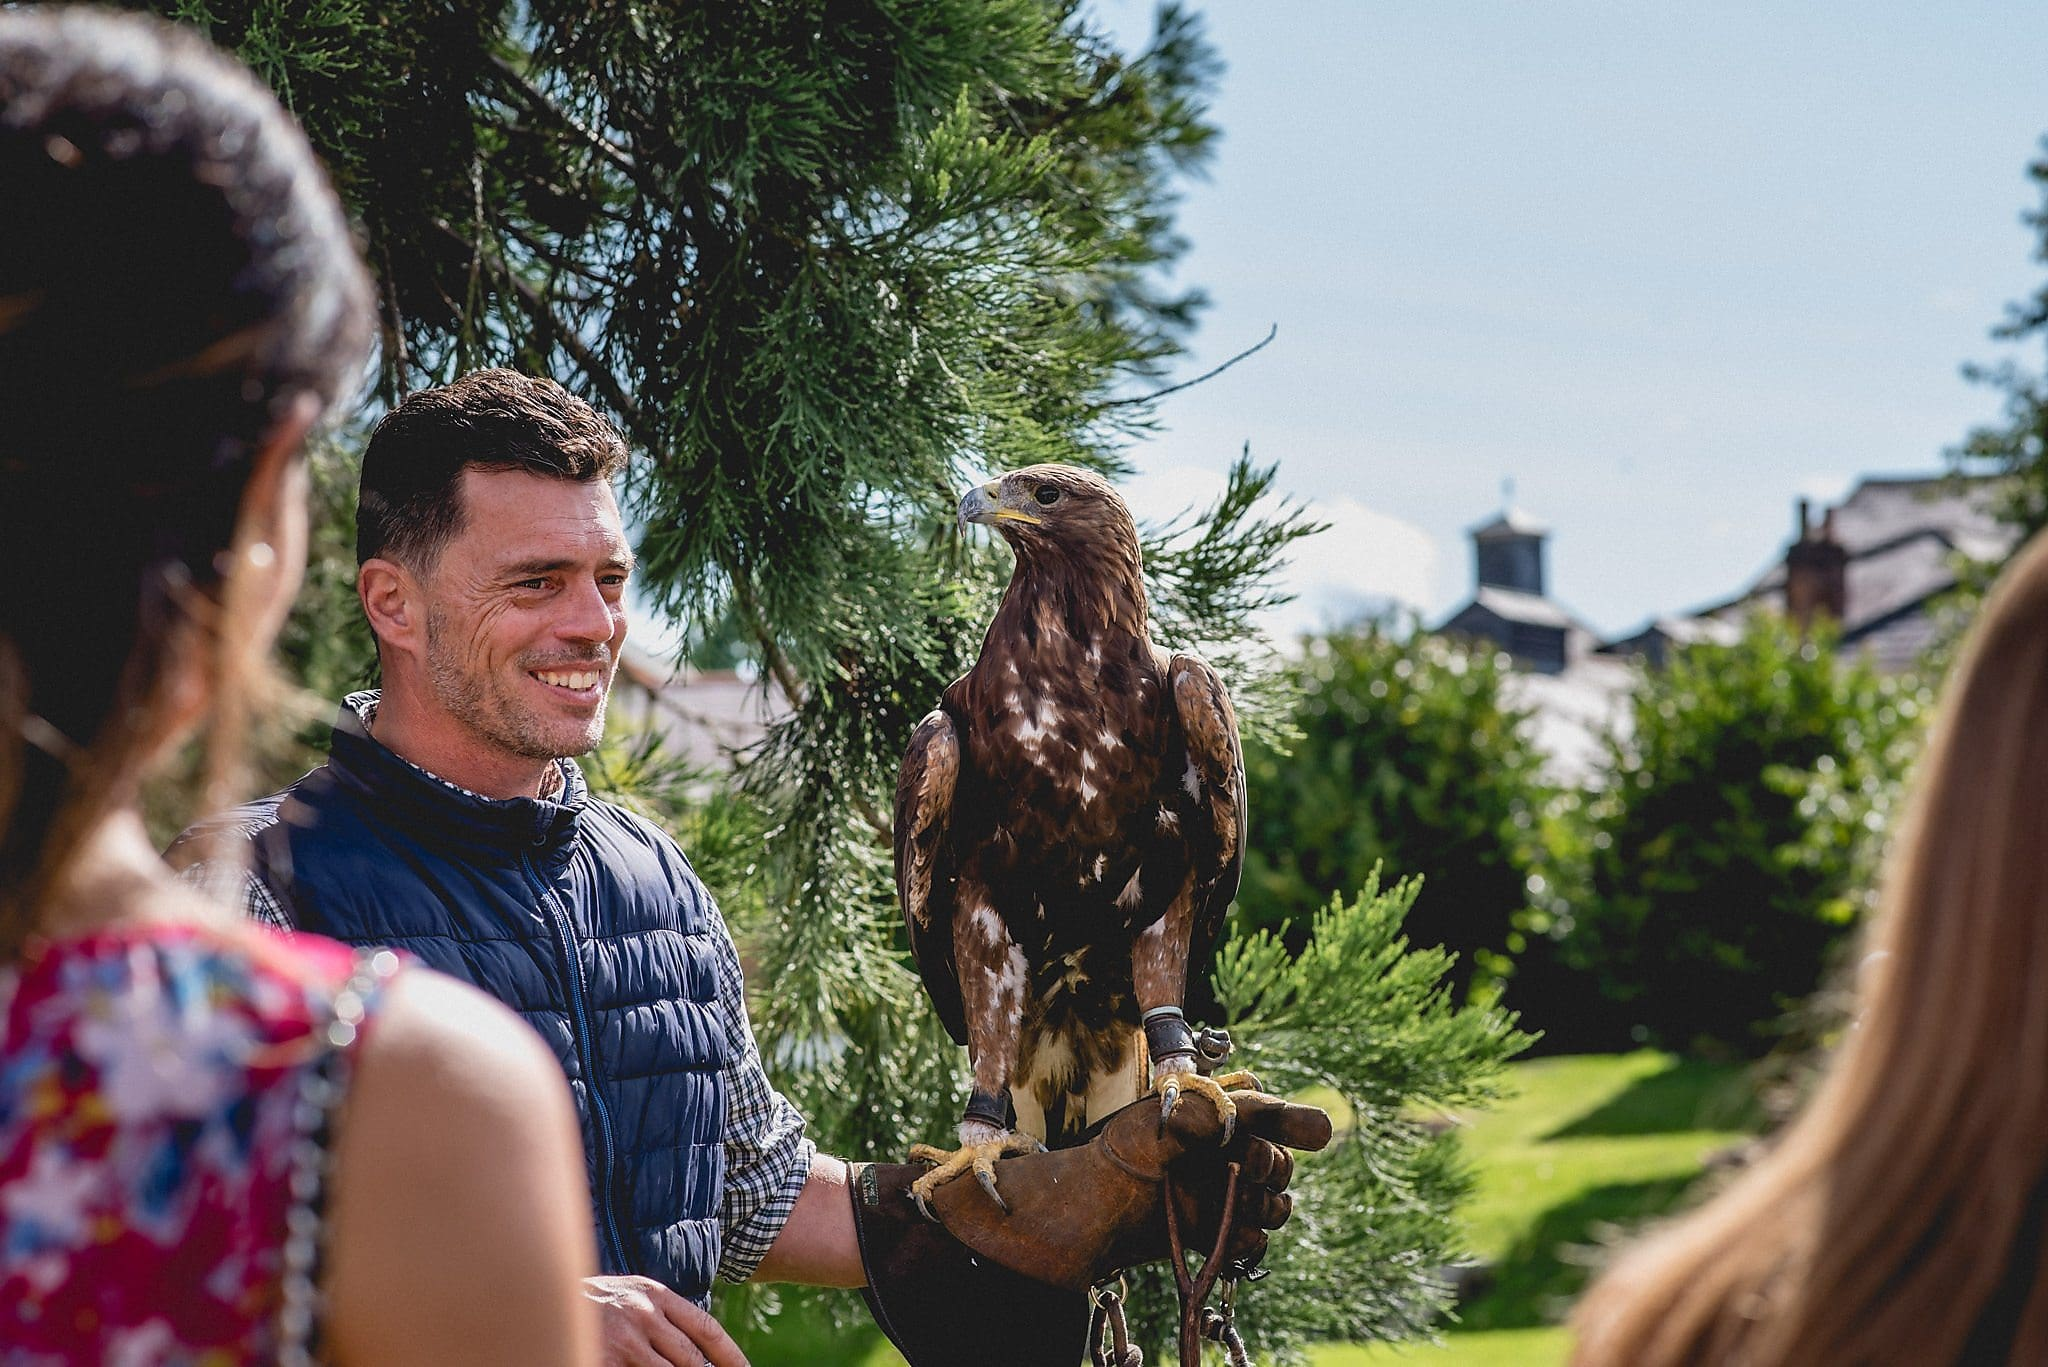 Bird of prey sits on handler's arm at wedding reception